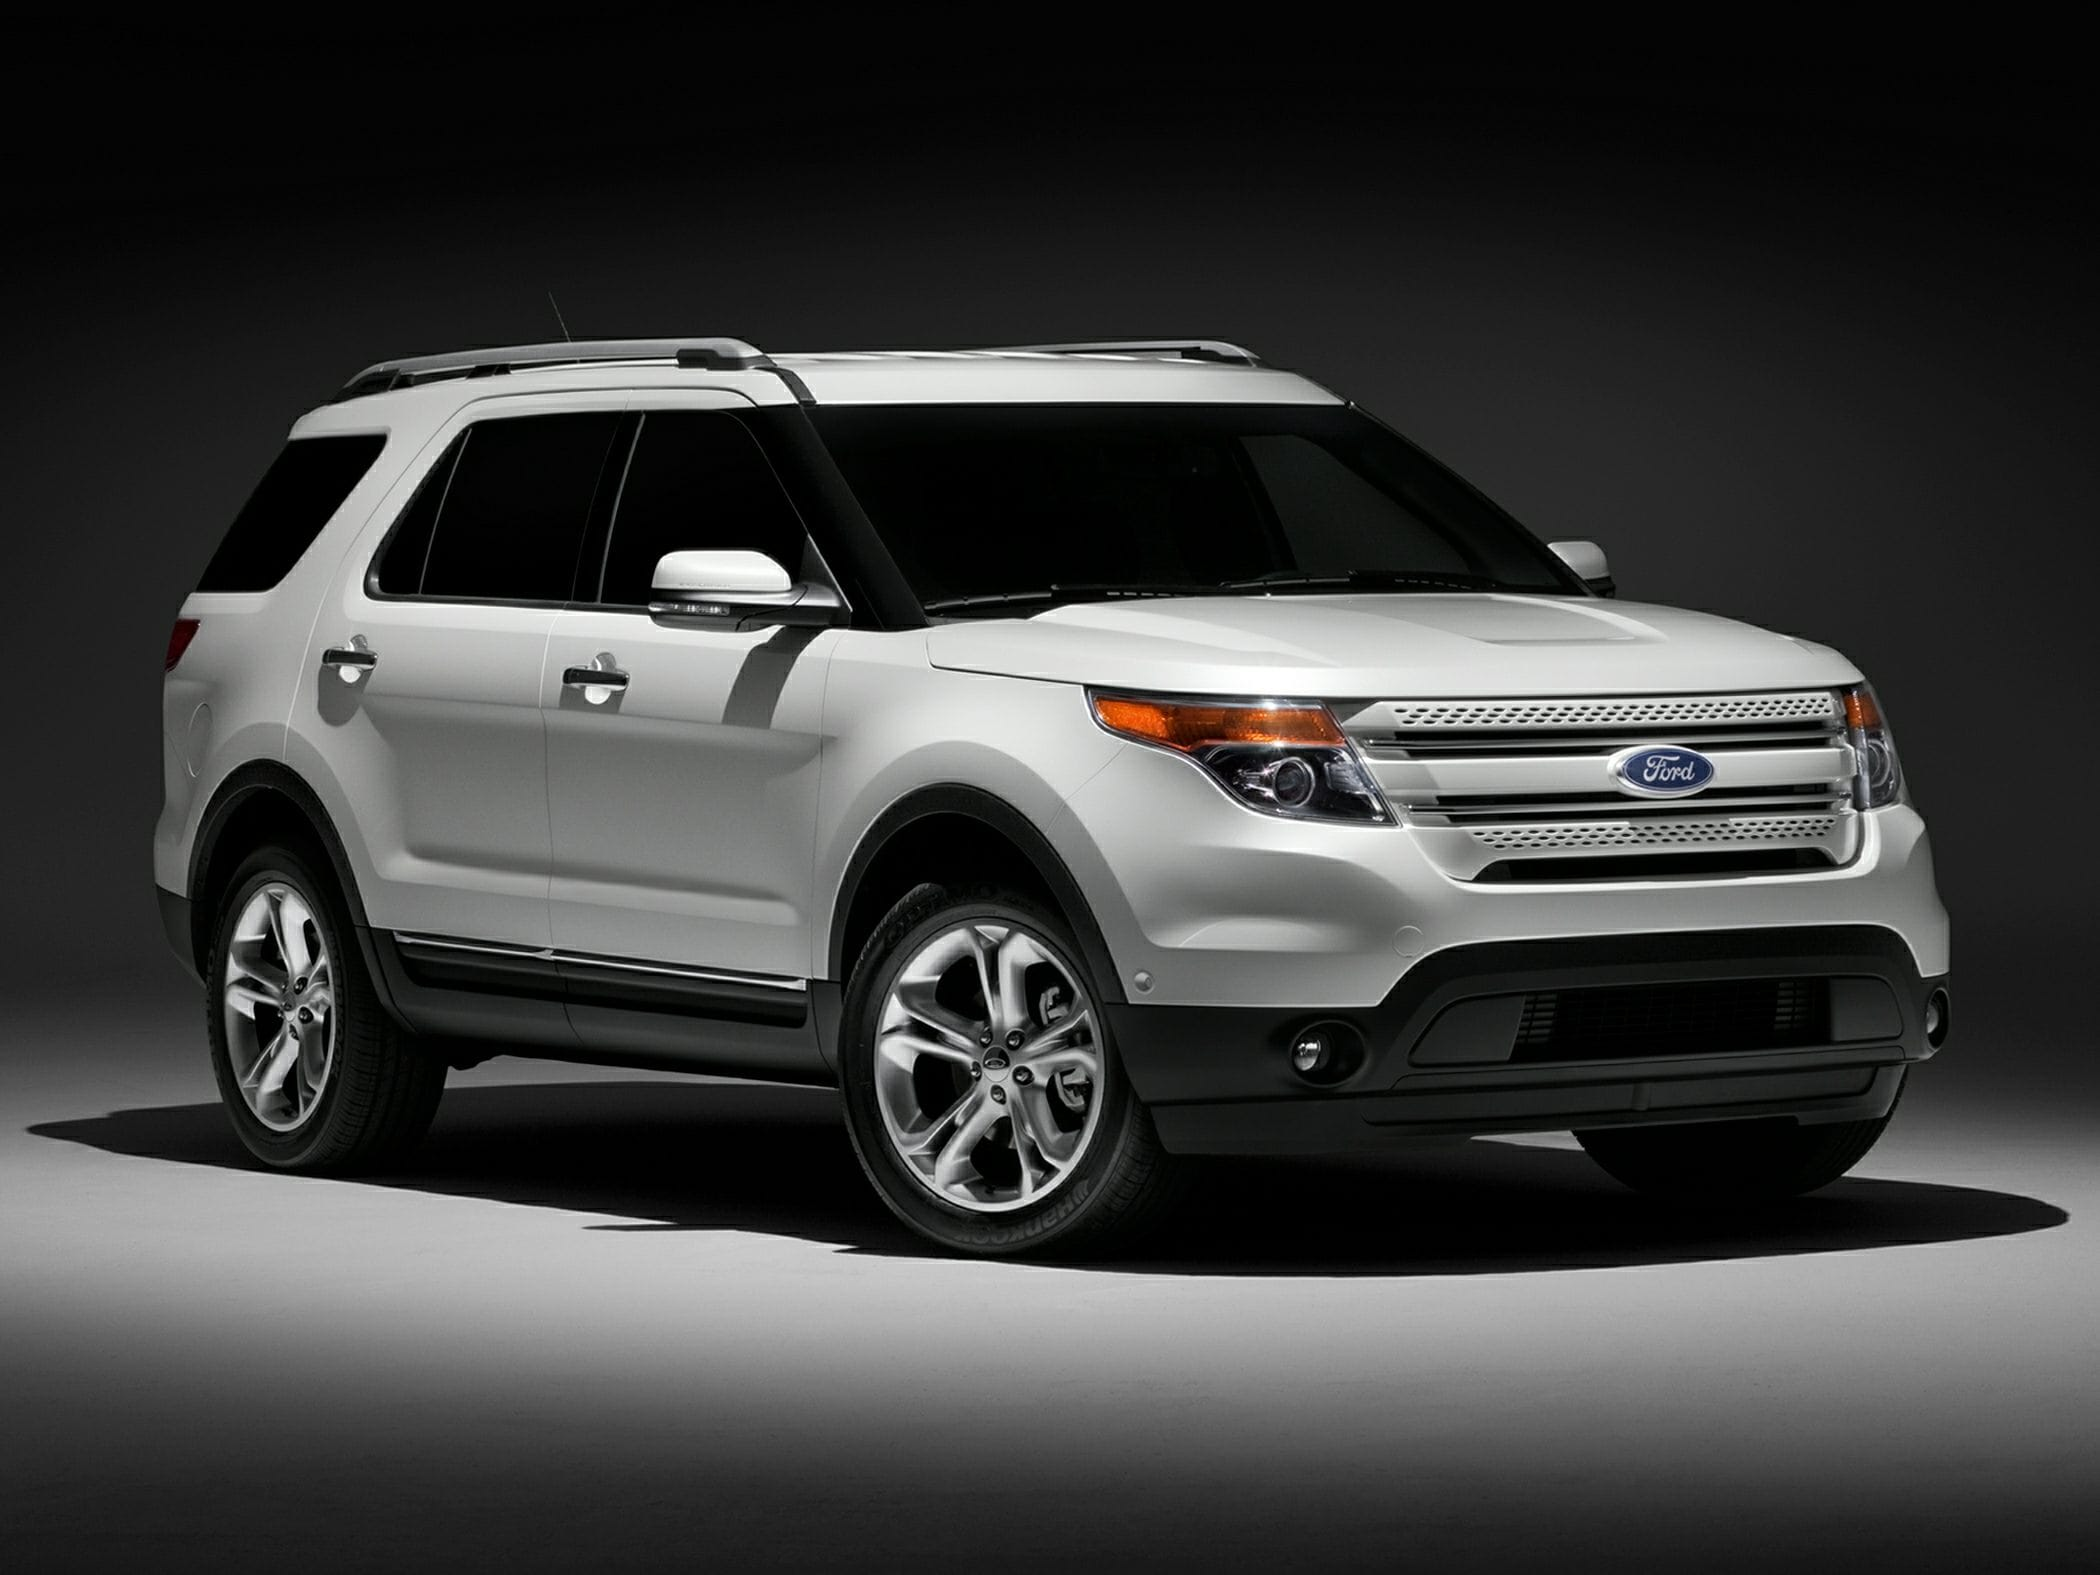 Ford Explorer HD pics